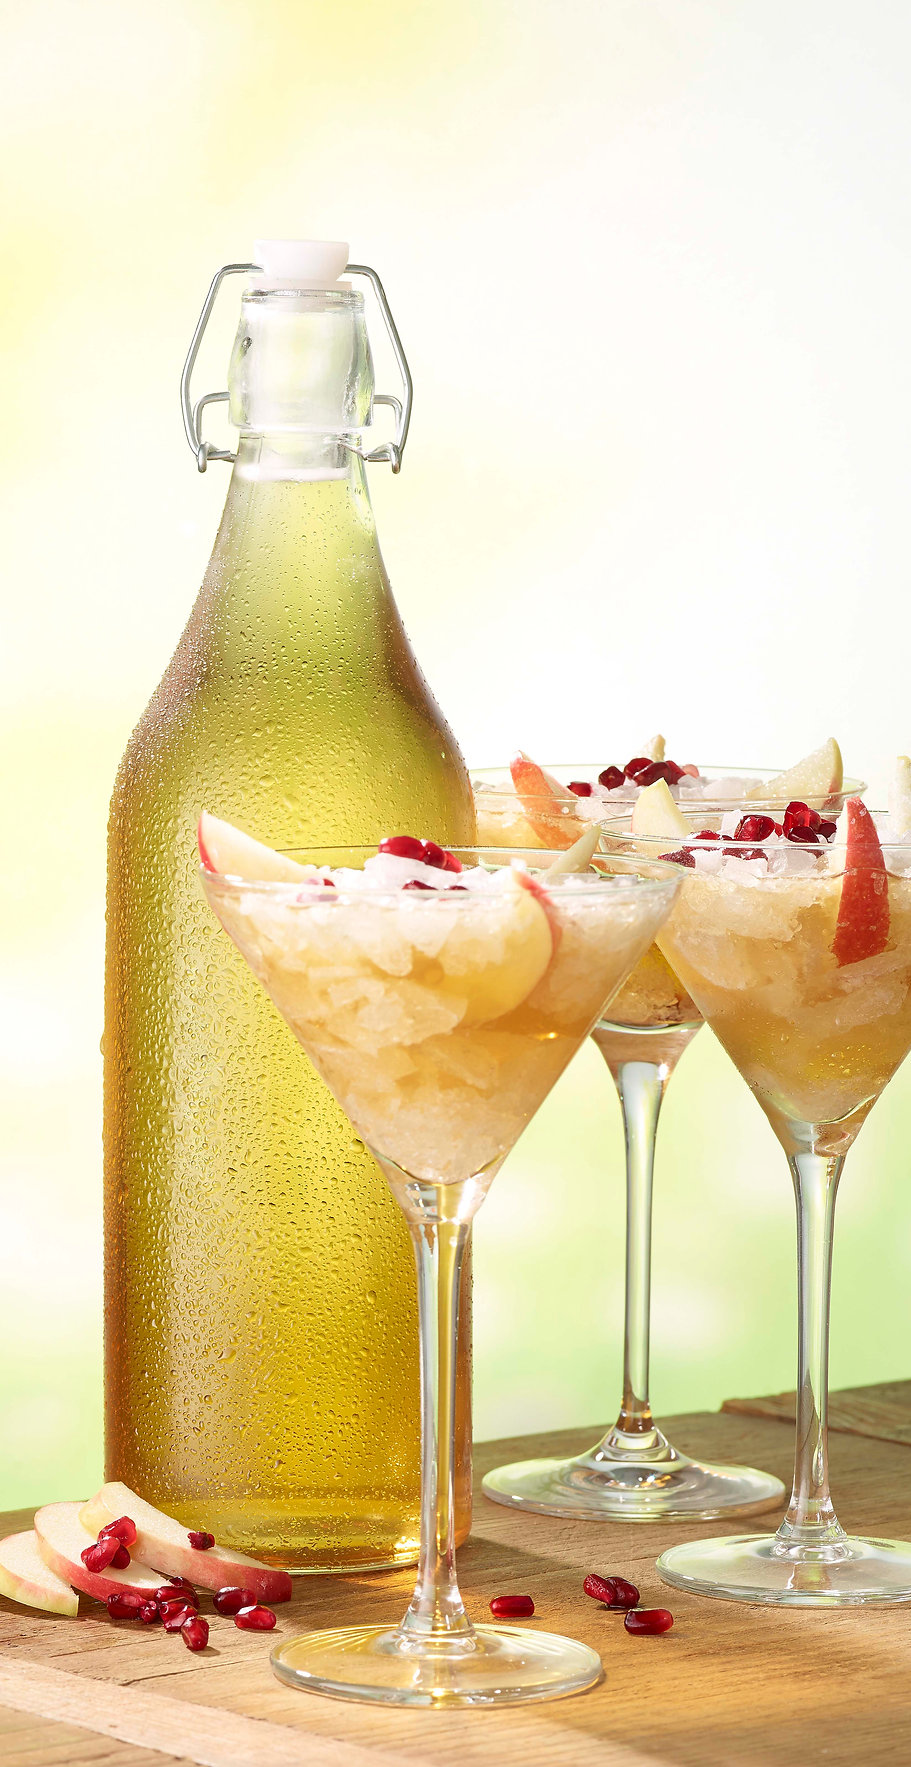 Drink photography of apple cocktails in a summer scene